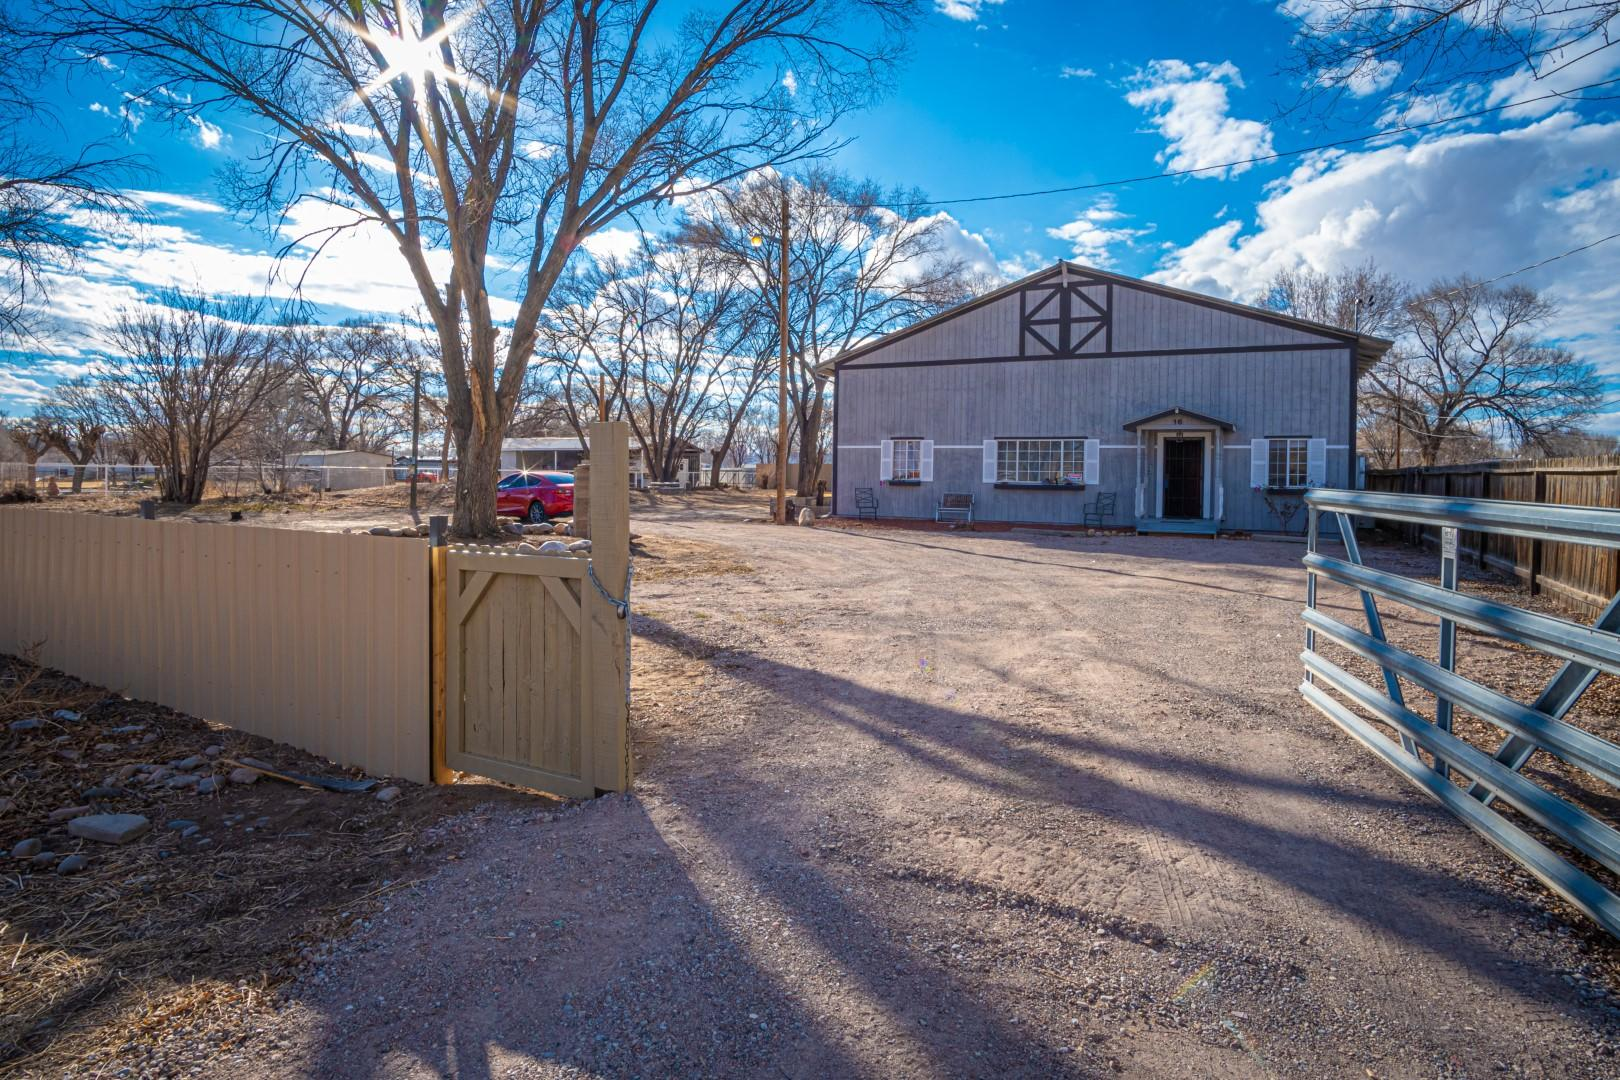 Beautiful remodeled home nestled on  .75  acres in Peralta.  This  5,028 sq ft. home is located in country setting & features 5 bedrooms (possible 6) with 2 full, baths, 1 3/4 bath + 1 half bath.  Spacious open floor plan with 19x31 combo great room w/cathedral ceilings, pellet stove & brick feature wall.  Kitchen has island/breakfast bar, solid surface counter tops, white Shaker cabinetry, pantry & stainless steel appliances.  Master Suite located on the main floor features walk-in closet and spa bath with garden tub, separate shower & double sinks.  Extra wide hall ways &  wide-plank hard-core vinyl flooring throughout the home. Completely fenced  & RV hook-up.  Private well and natural gas.  Will be connected to city sewer.  Easy access to Albuquerque & close to all City conveniences.